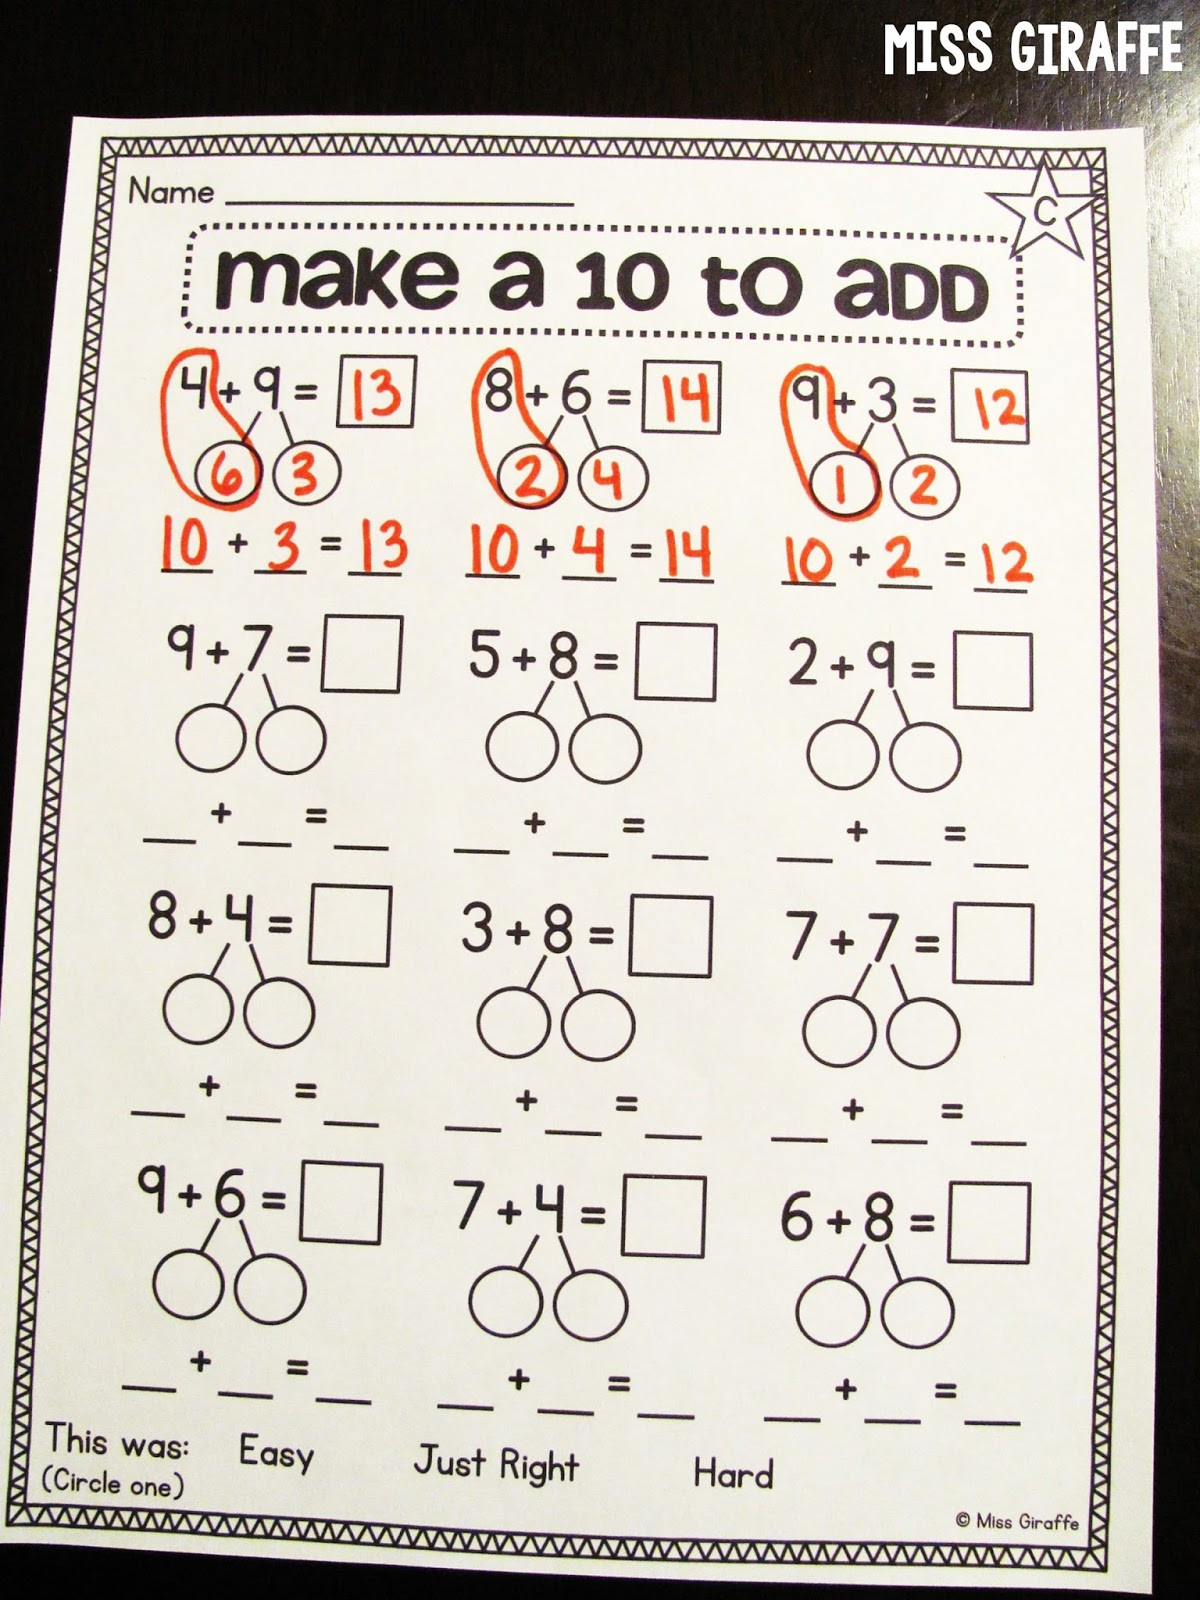 30 Composing And Decomposing Numbers Worksheet